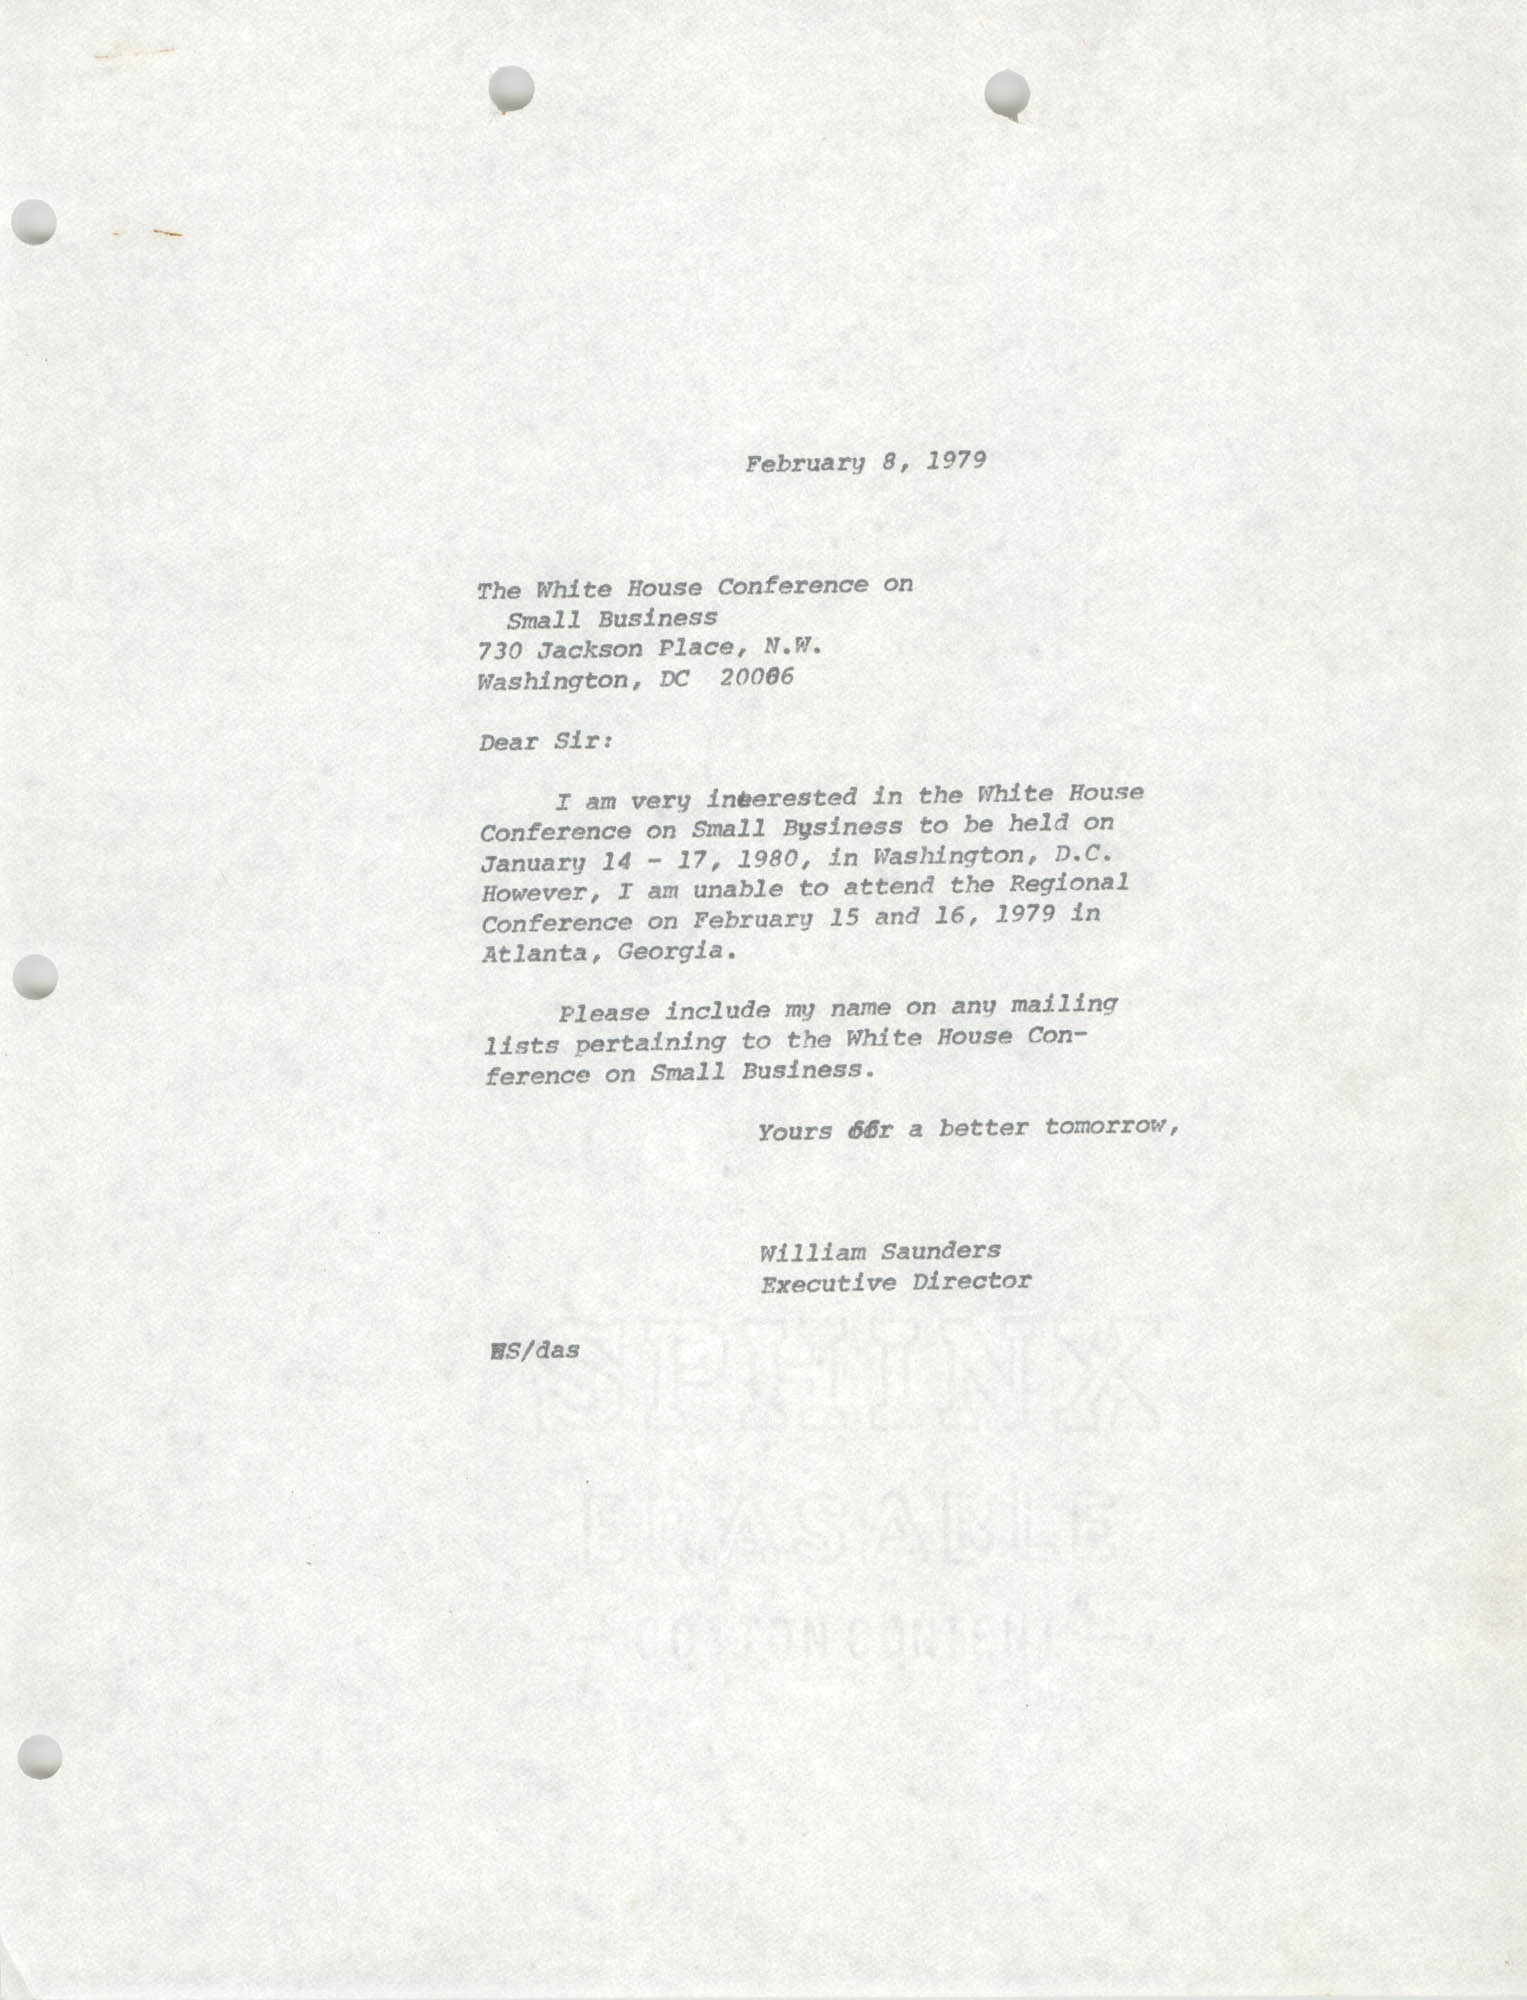 Letter from William Saunders to The White House Conference on Small Business, February 8, 1979